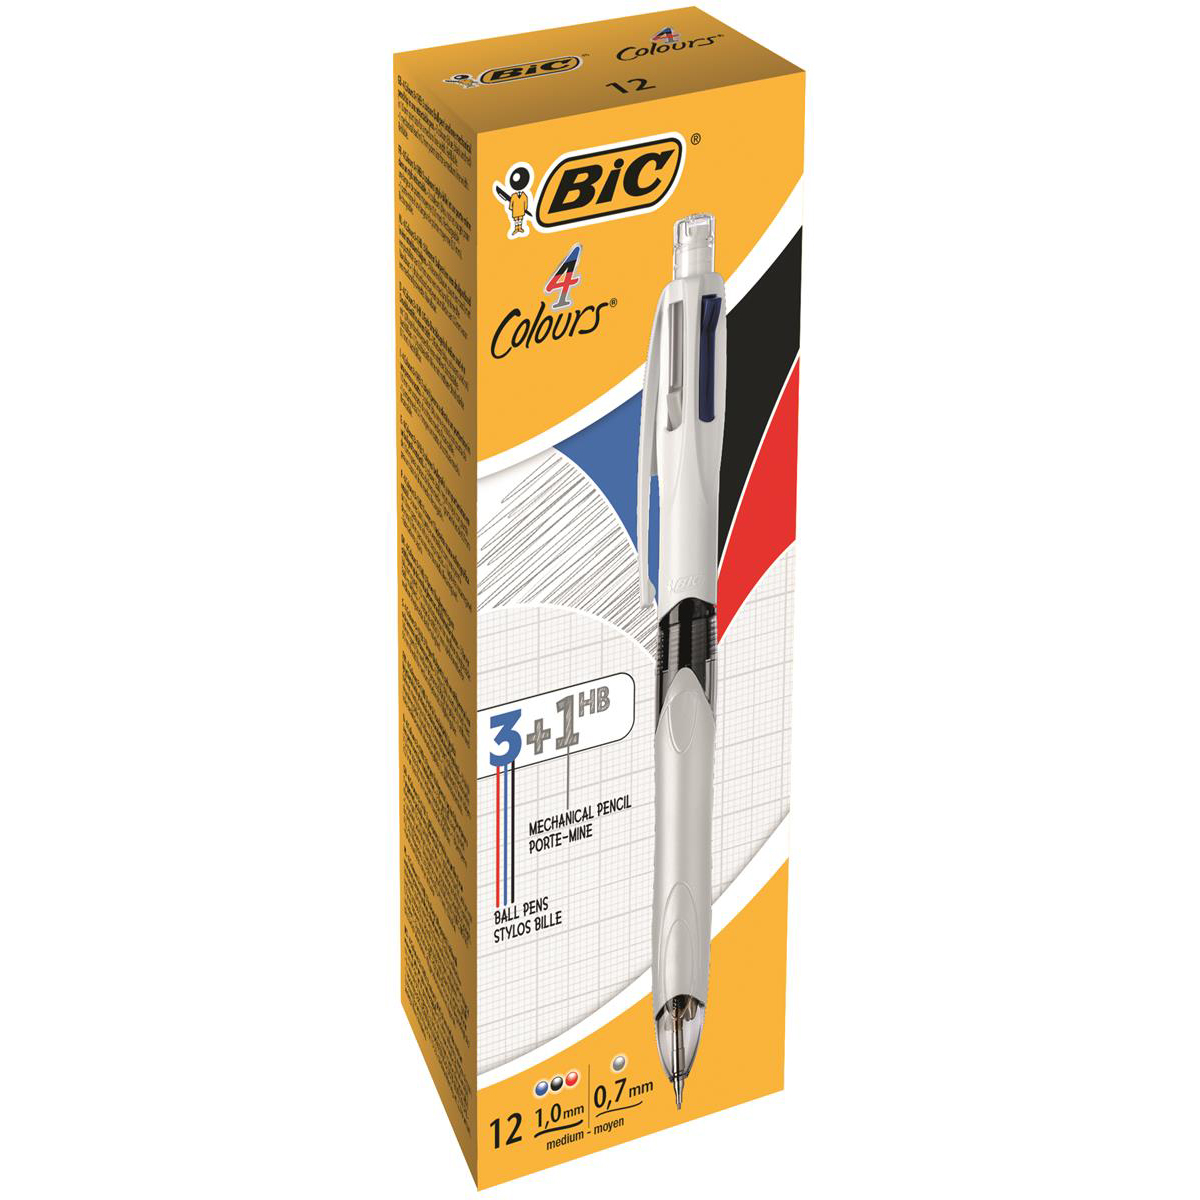 Bic 4 Colour Ballpoint Pen with Pencil Black Blue Red Ink Ref 942104 [Pack 12] [2 For 1] Jul-Sep 2018